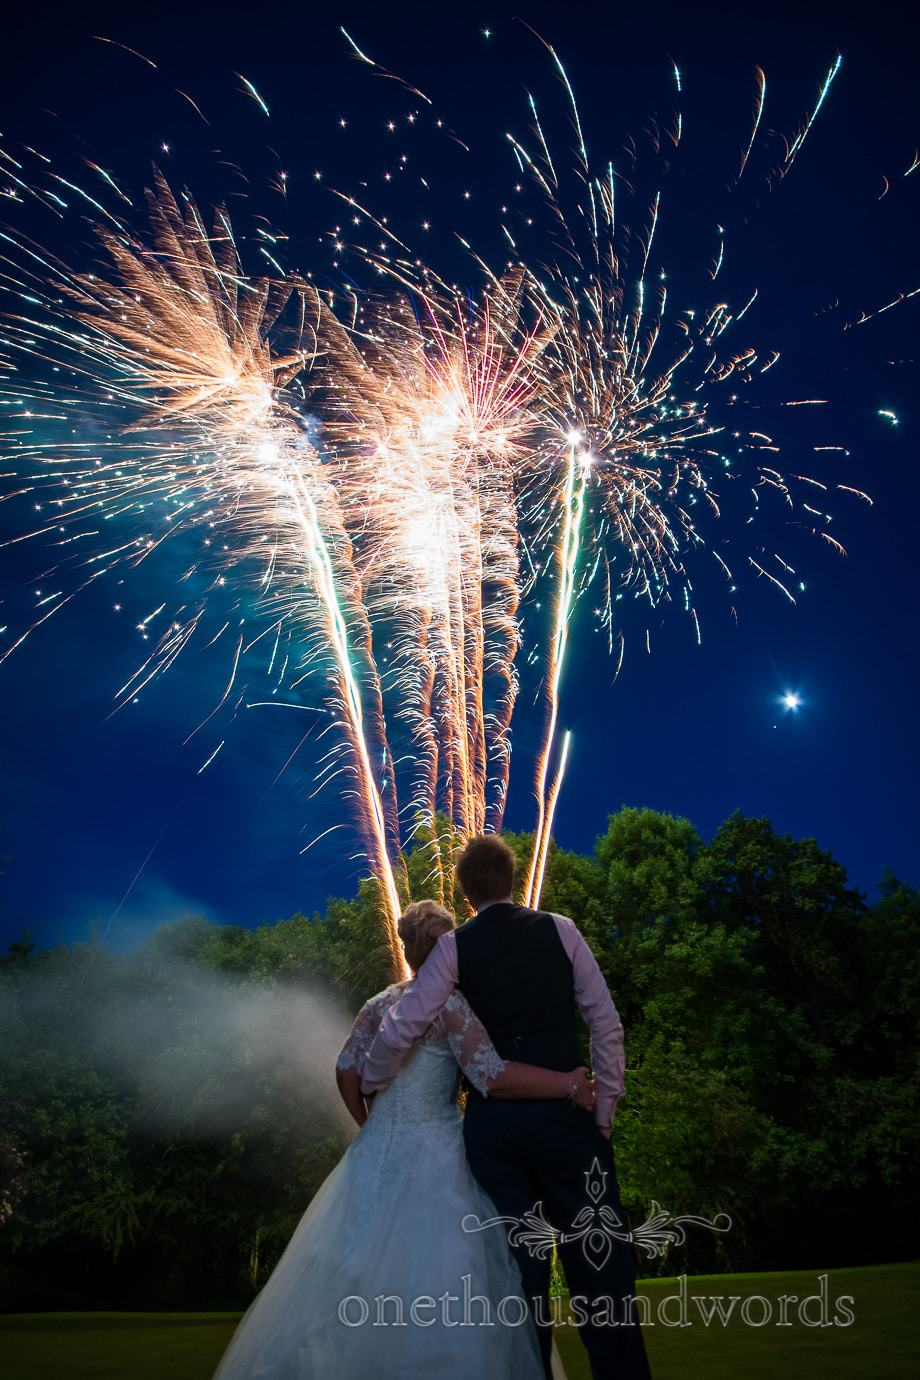 Wedding fireworks above trees with bride and groom in foreground and moon